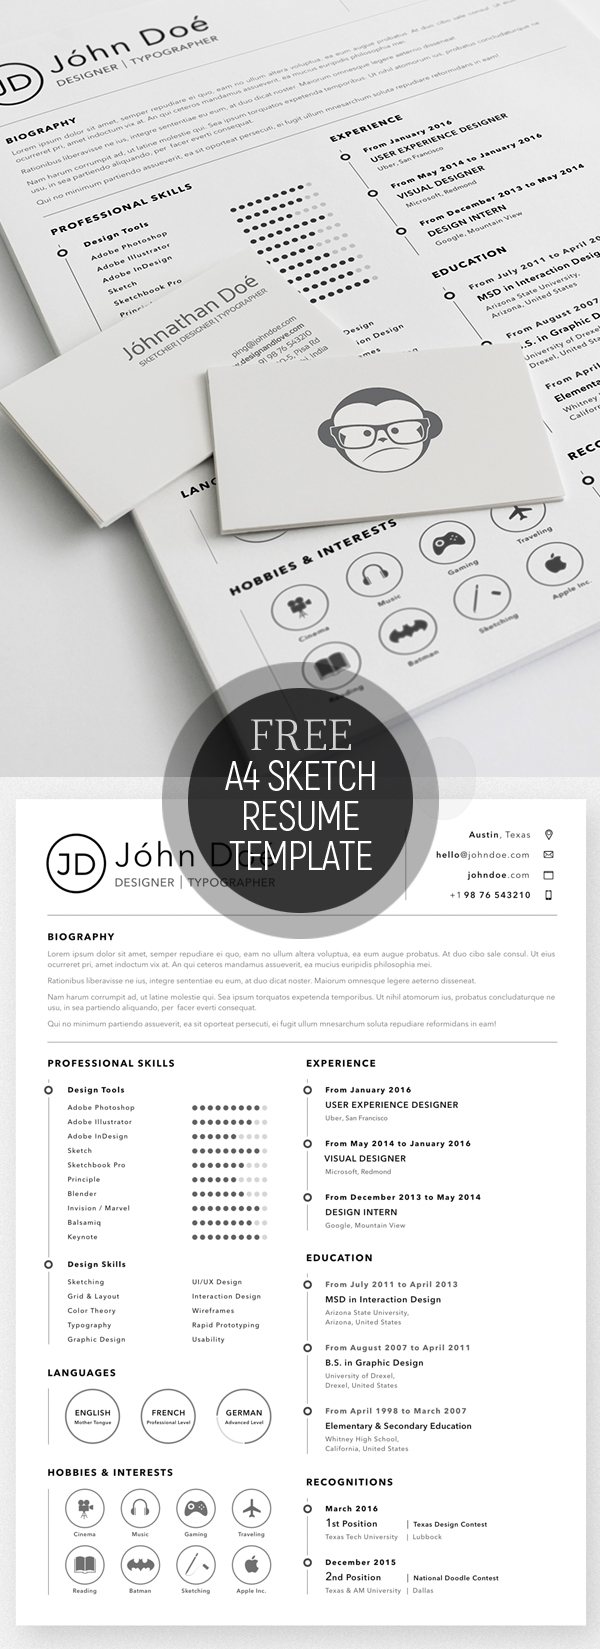 resume templates for bies graphic design junction a4 resume sketch template